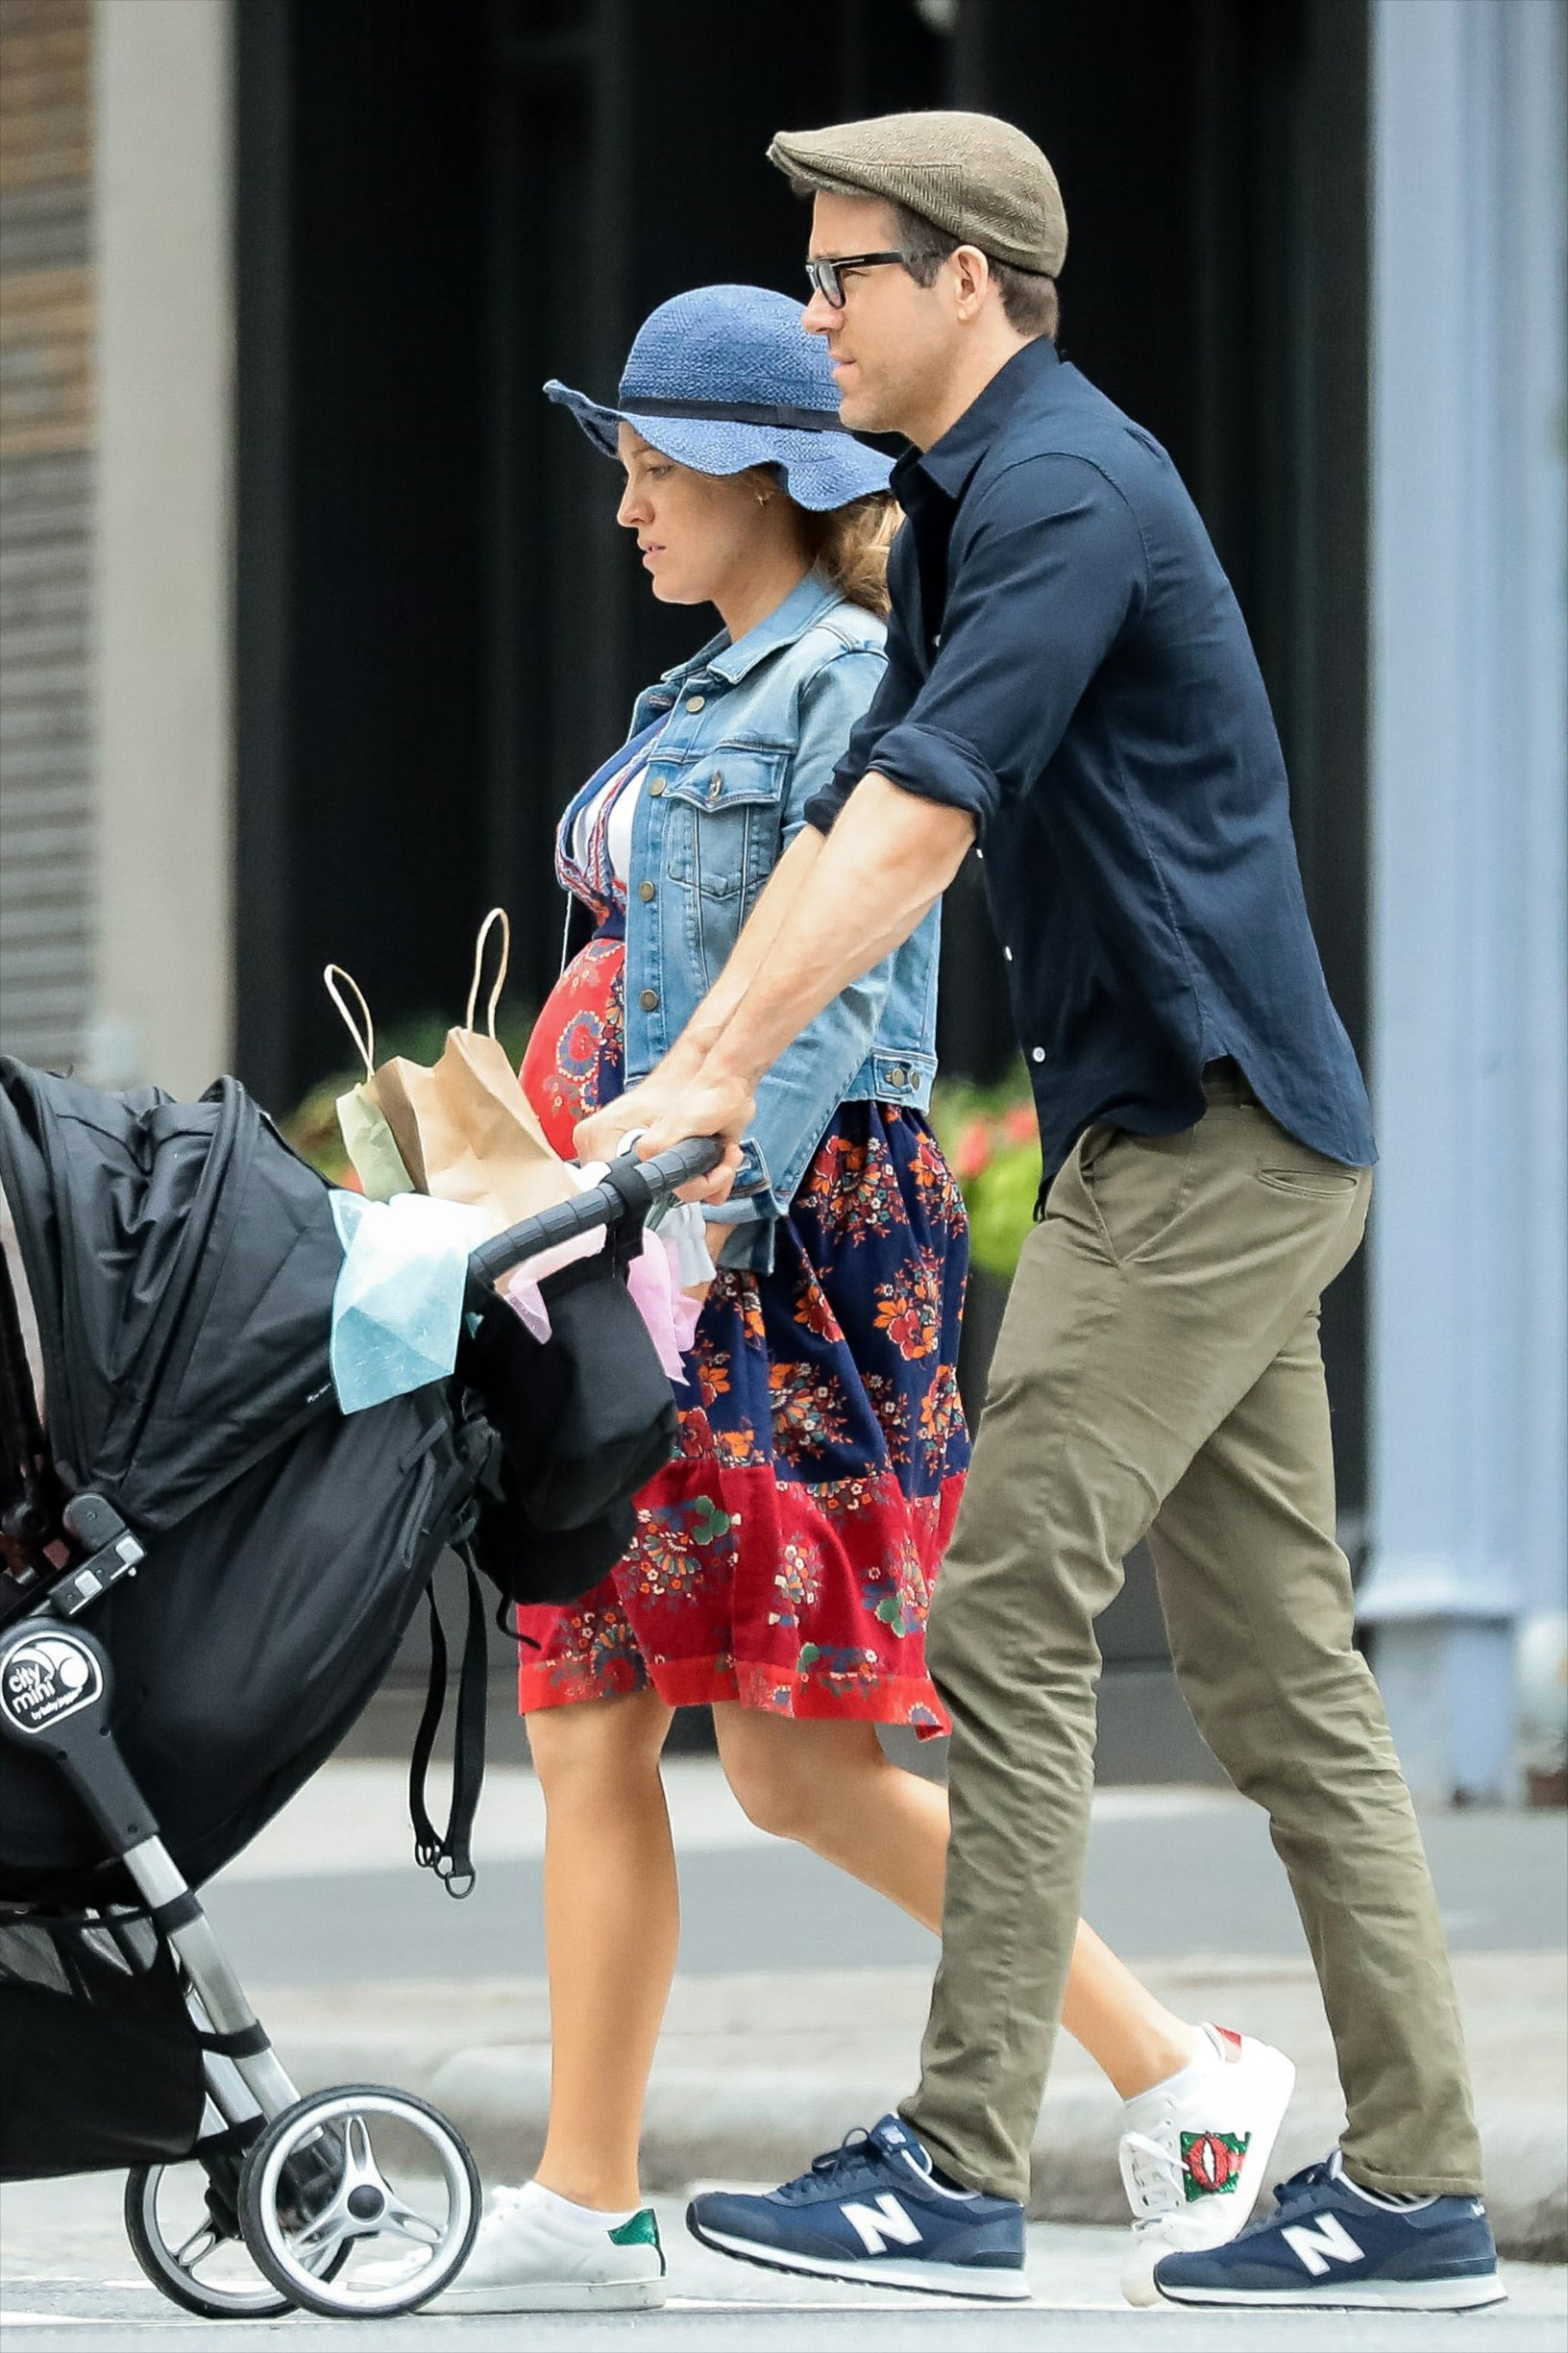 -New York, NY - 20190619 -  Blake Lively and Ryan Reynolds seen taking their daughter, Inez, out on a stroll in NY.  -PICTURED: Blake Lively, Ryan Reynolds -, Image: 449869486, License: Rights-managed, Restrictions: , Model Release: no, Credit line: Profimedia, INSTAR Images